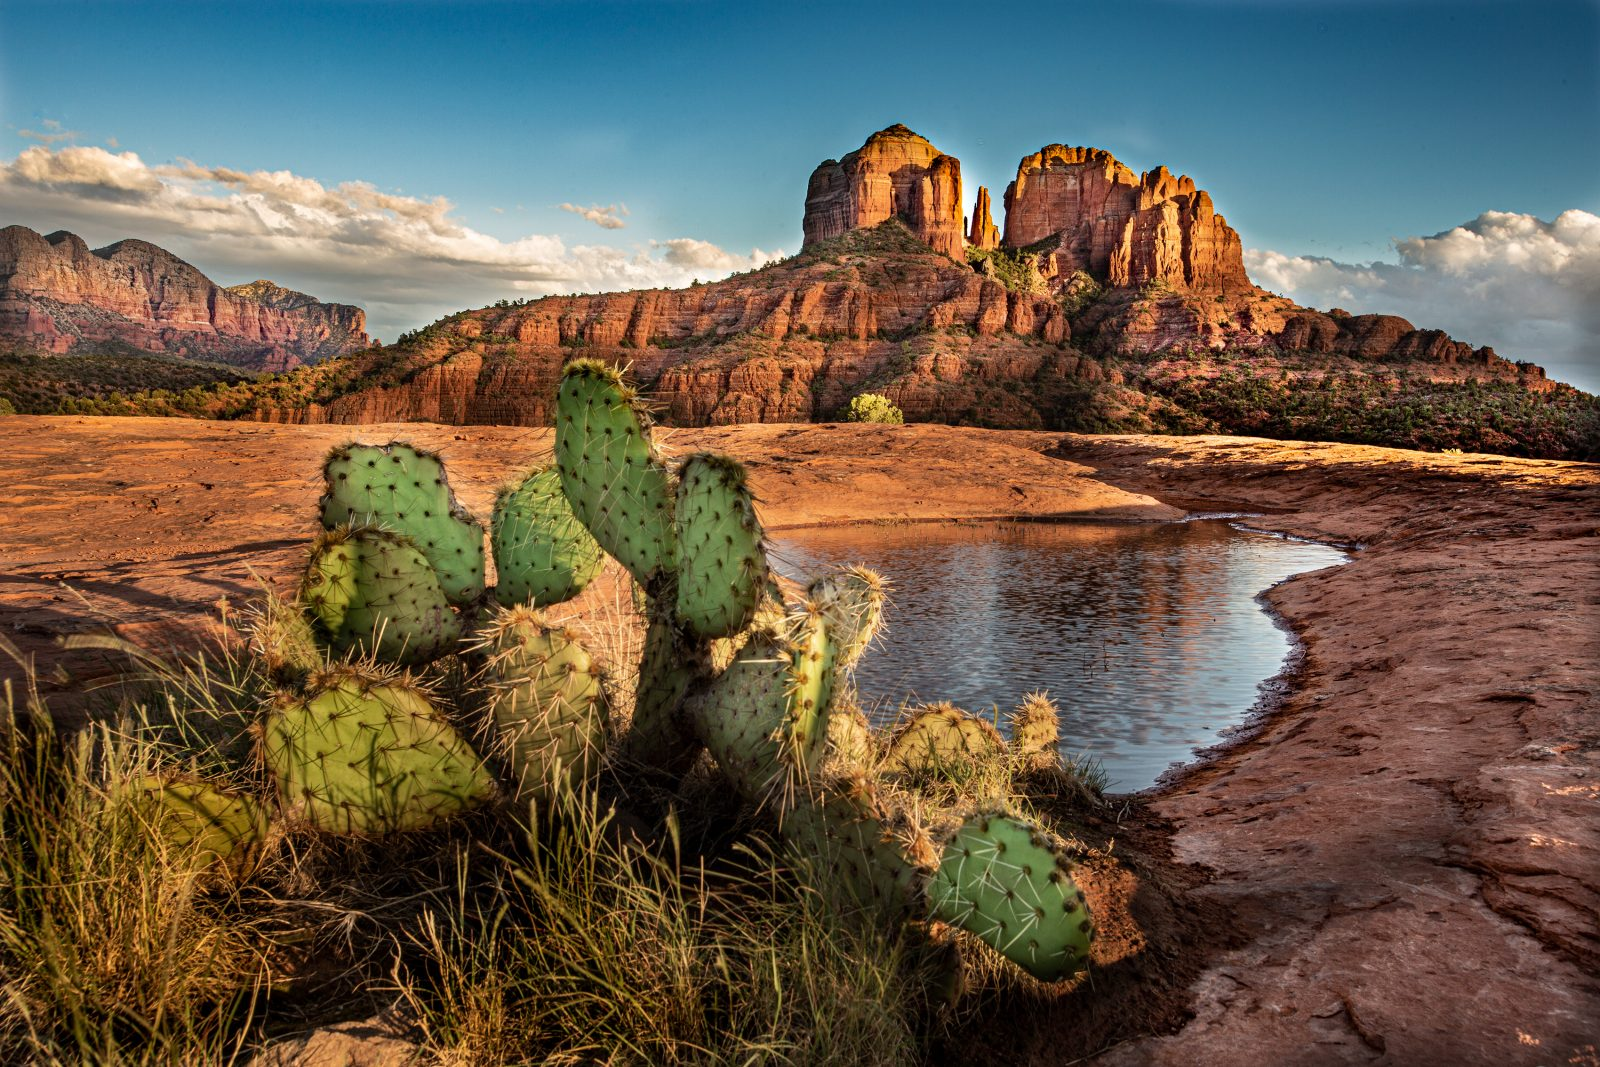 Cactus with Cathedral Rock and Water